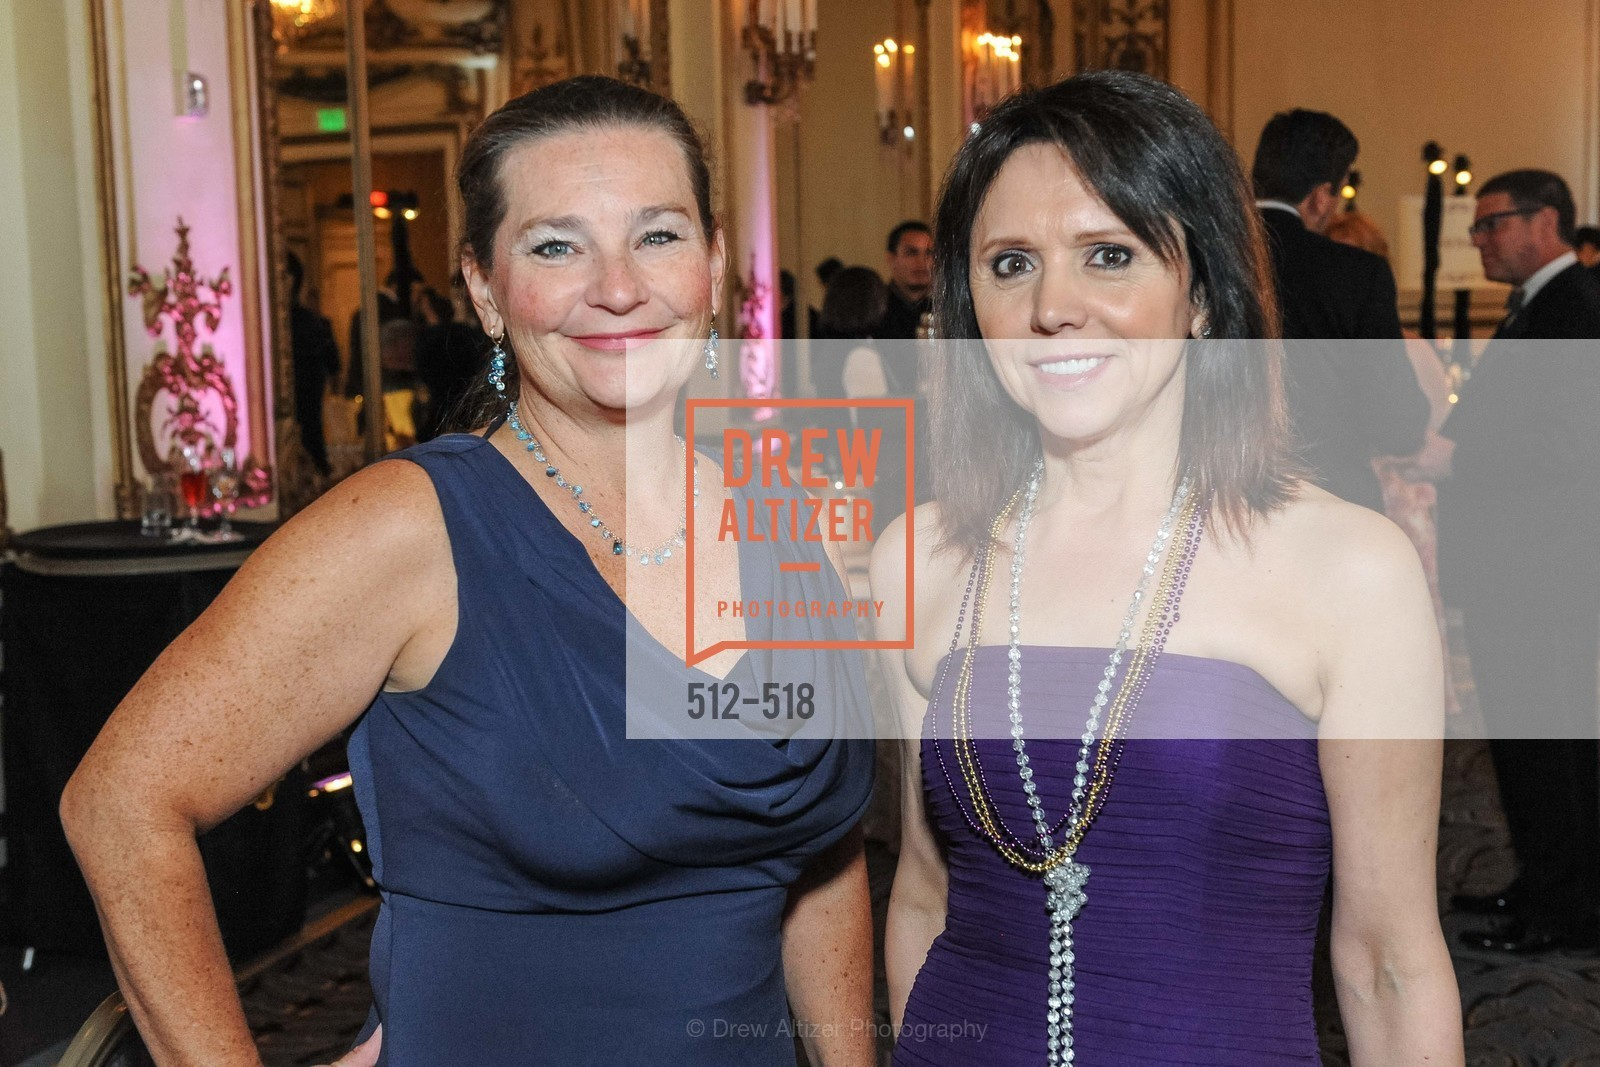 Kristen Soetebier, Barbara Cartier, MEROLA OPERA Spring Benefit 2014:  A Night in New Orleans, US. Fairmont, April 12th, 2014,Drew Altizer, Drew Altizer Photography, full-service agency, private events, San Francisco photographer, photographer california